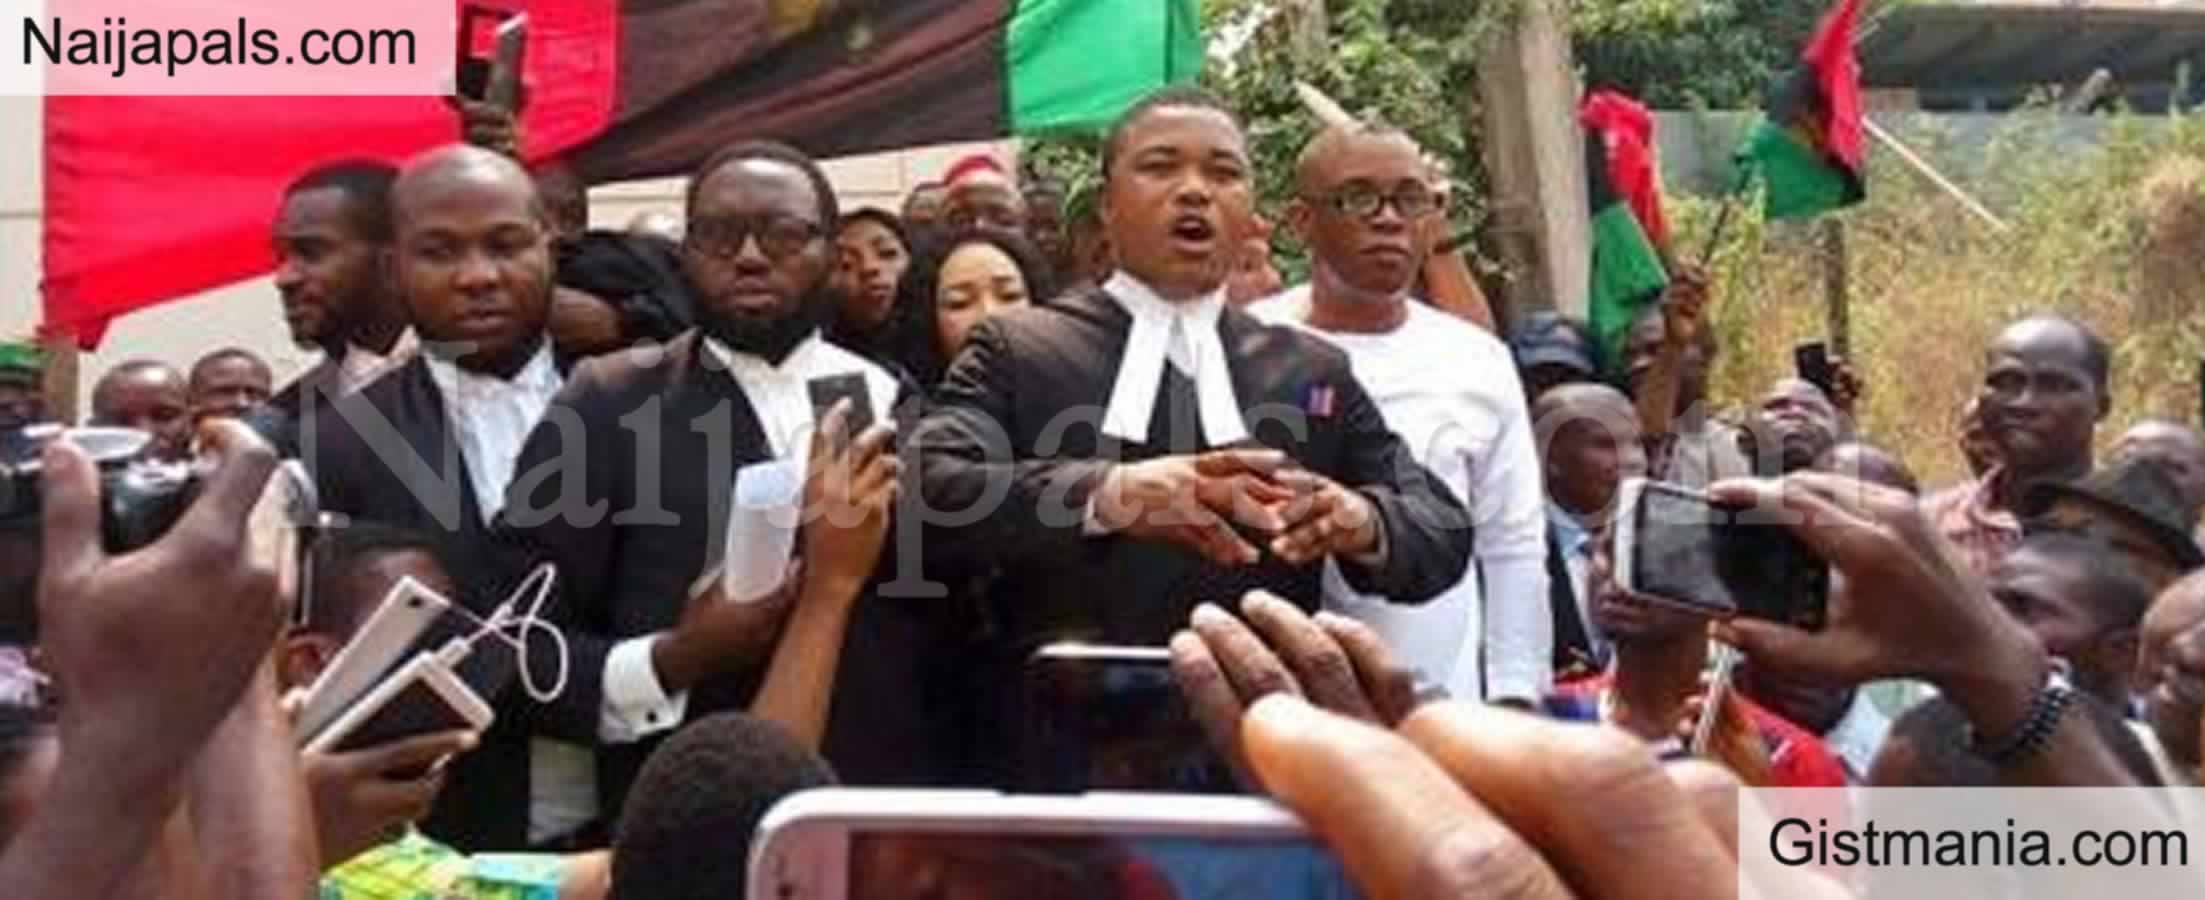 <img alt='.' class='lazyload' data-src='https://img.gistmania.com/emot/news.gif' /> <b>Arrested IPOB Leader, Nnamdi Kanu's Lawyer, Ifeanyi Ejiofor Reveals He Is Set To Be Released</b>